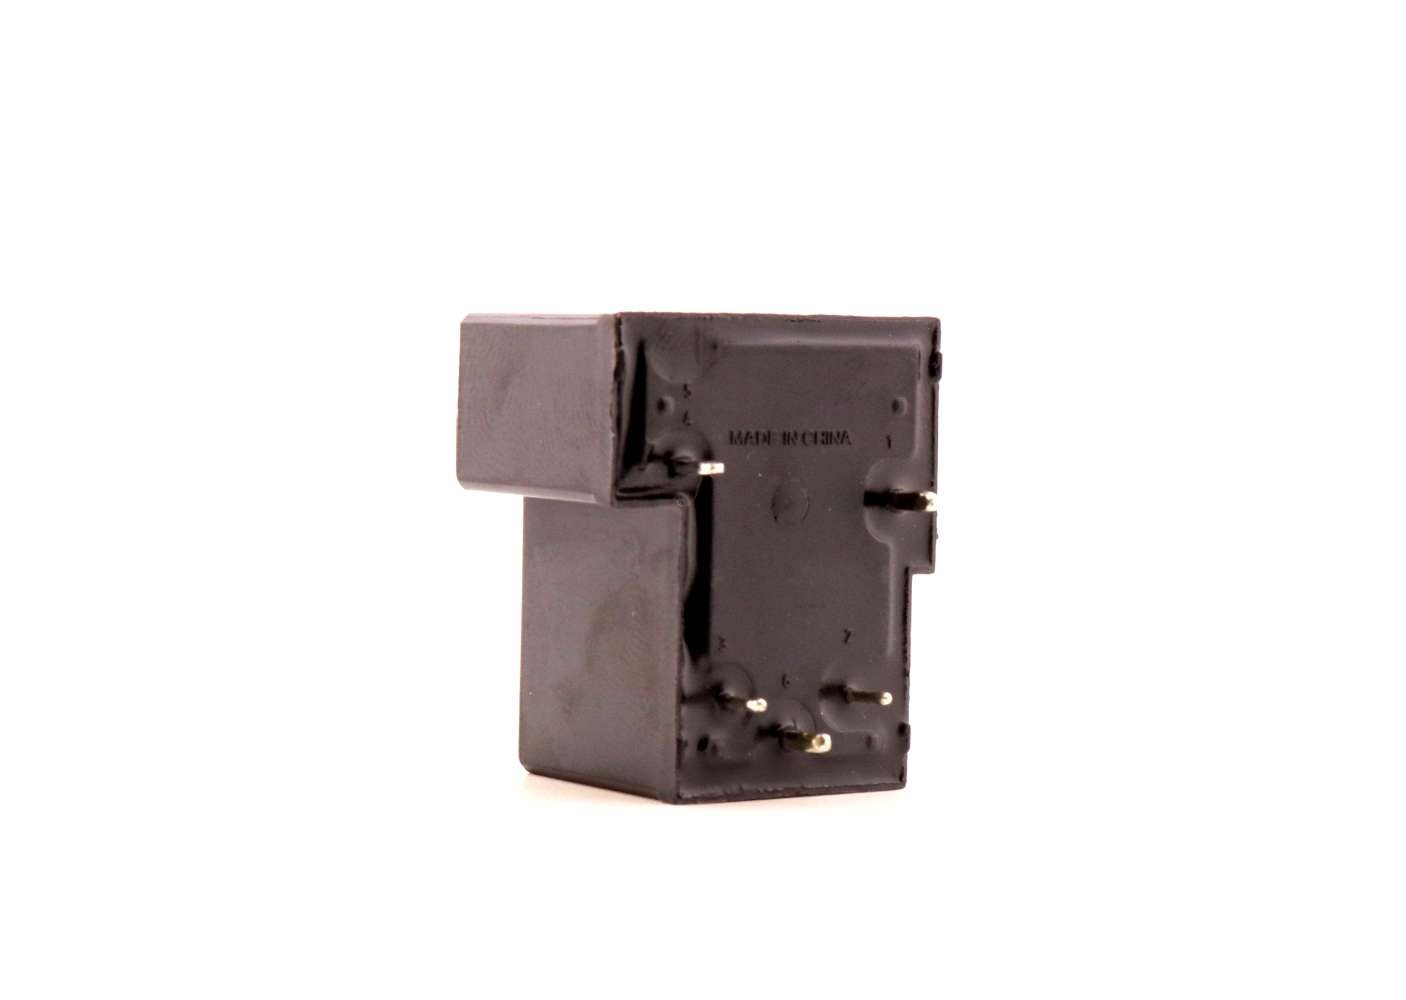 PTRH-1A-24S-X SPST-NO 24 VDC Coil 30 Amp 250 VAC UL Rated T90 Sealed Power PCB Relay Cross: Omron G8P-1A4P-DC24